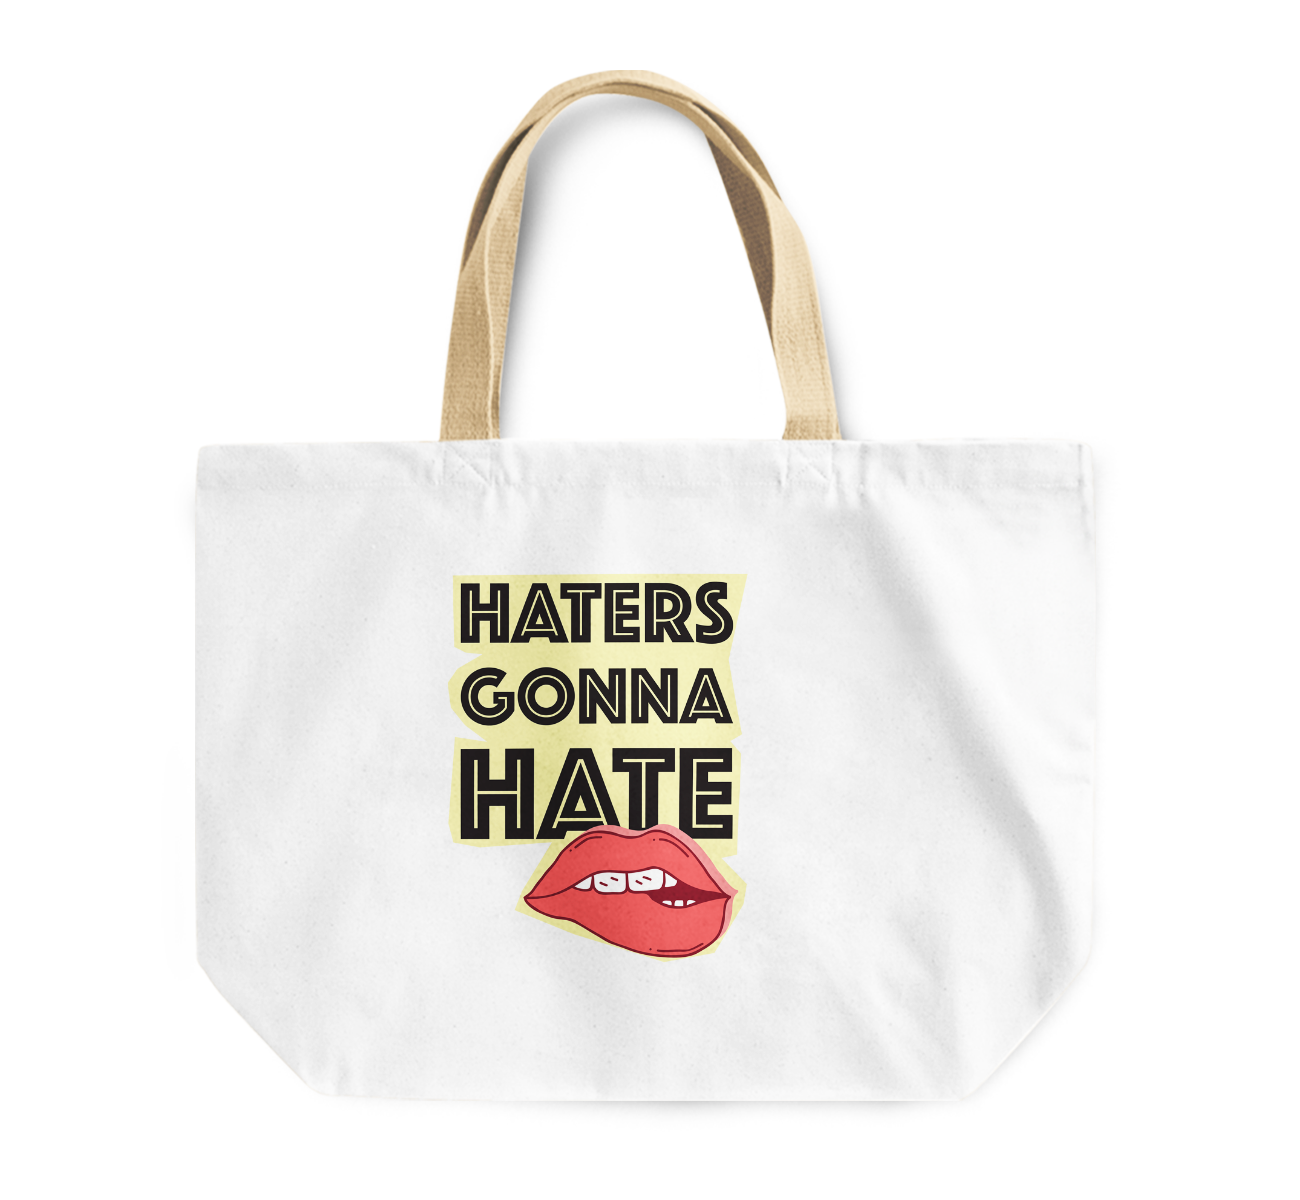 Tote Bag Haters Gonna Hate Seductive Red Lips Reusable Shopping Bag By Loud Universe